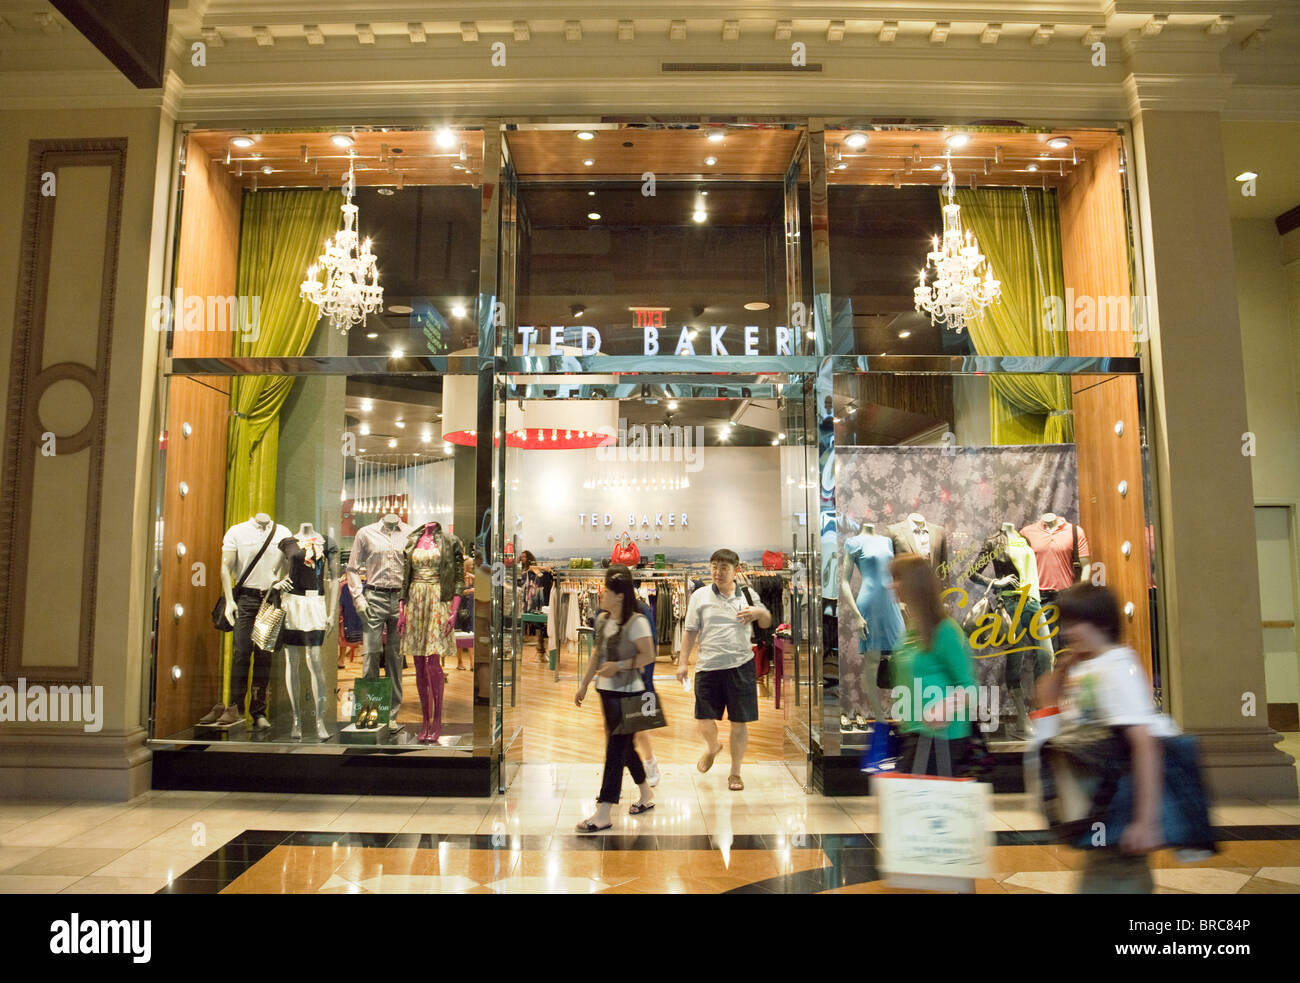 people shopping at the ted baker store the forum shops caesars stock photo royalty free image. Black Bedroom Furniture Sets. Home Design Ideas